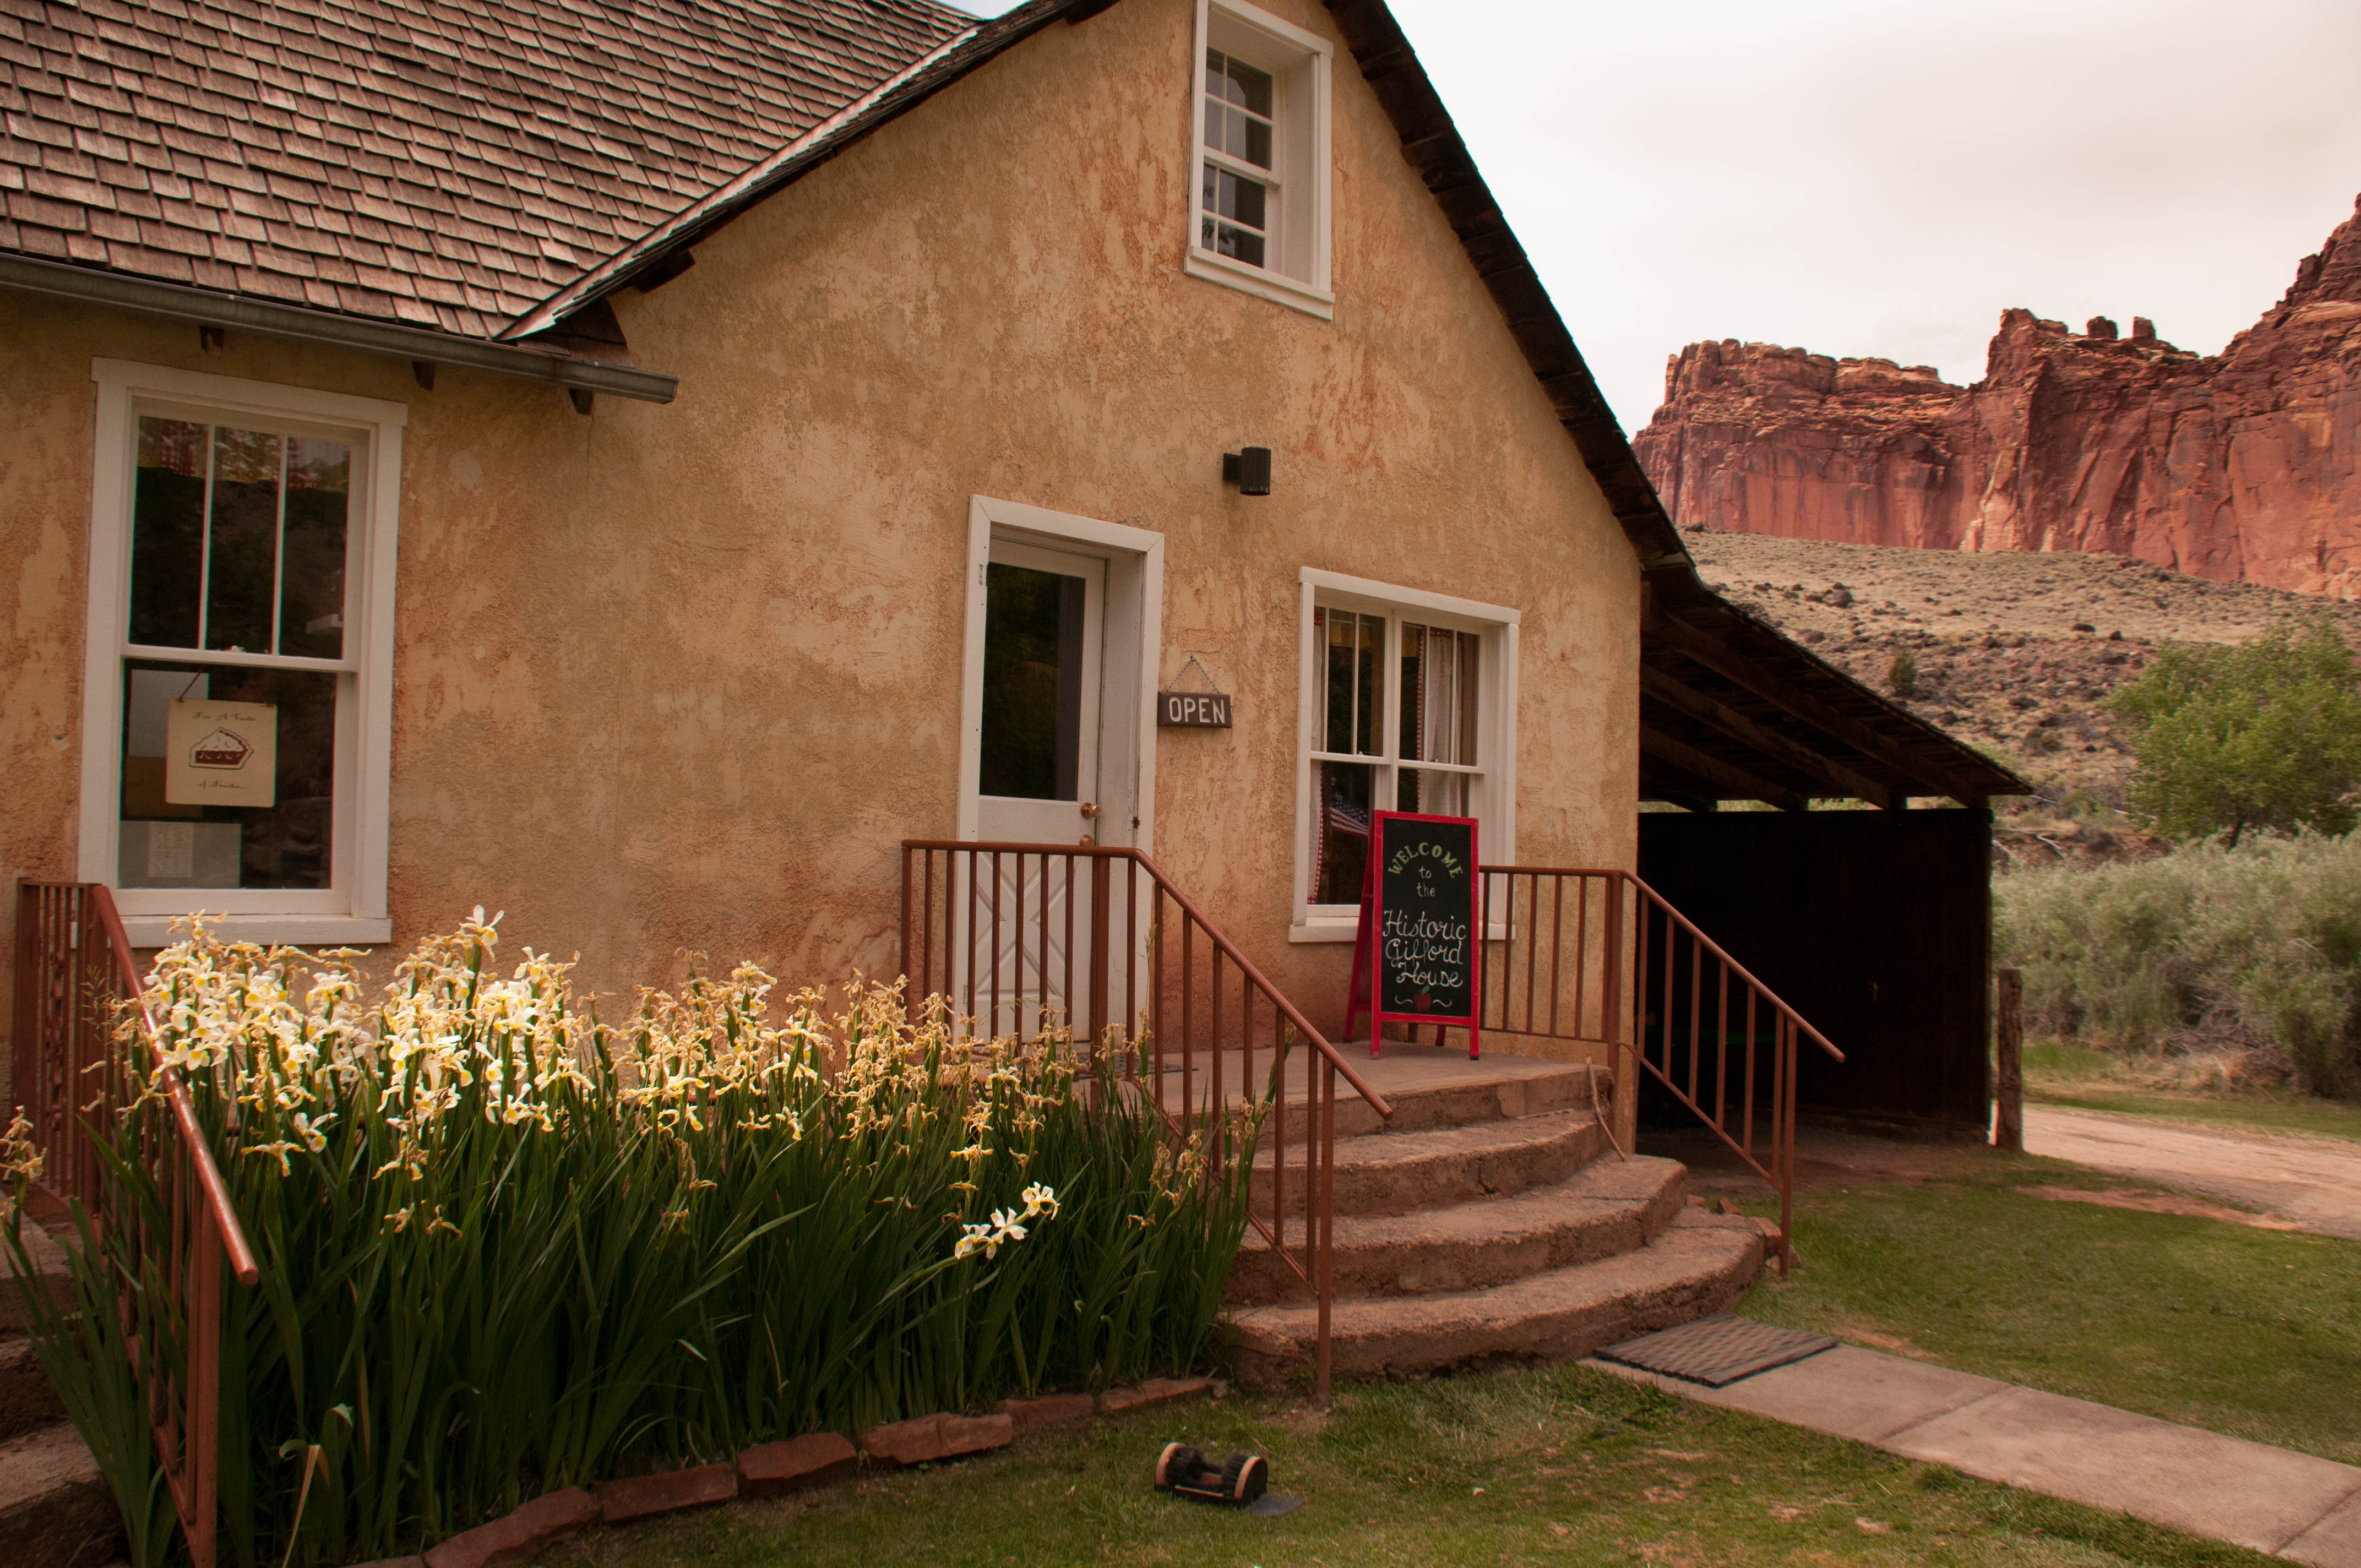 Gifford House and Museum, Fruita, Capitol Reef National Park, Utah, June 2016 | Photo by Jim Lillywhite, St. George News